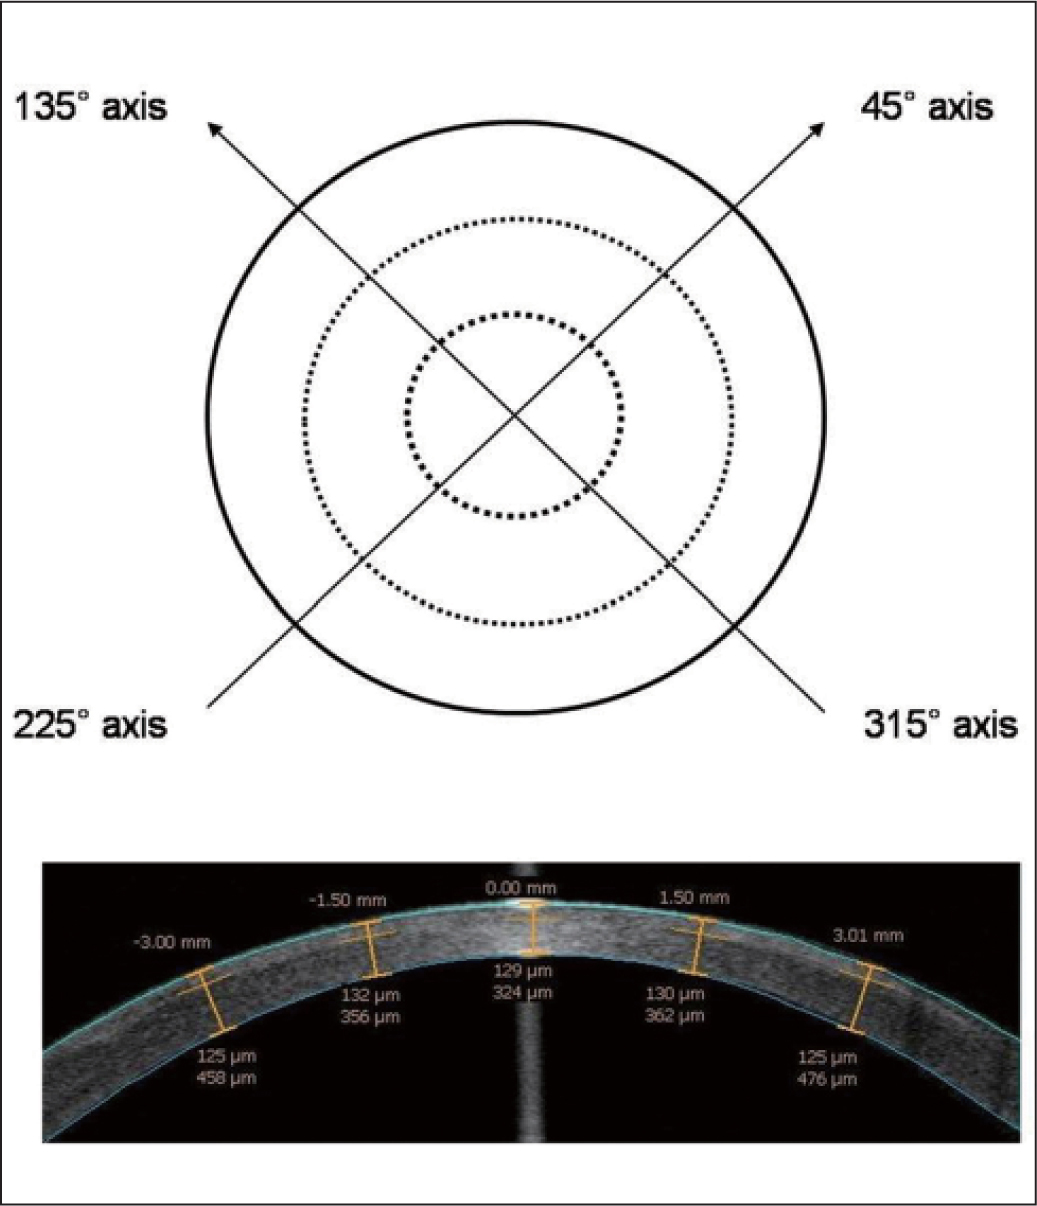 (Top) Method of measuring corneal flap thickness with anterior segment optical coherence tomography (OCT). Flap thickness was measured at the flap center, 1.5-mm zone (inner circle), and 3.0-mm zone (intermediate circle) along a 45° (including 225°) meridian and a 135° (including 315°) meridian from the flap center, for a total of 10 points. (Bottom) Measurement of a 120-μm flap thickness setting at 1 week postoperatively.